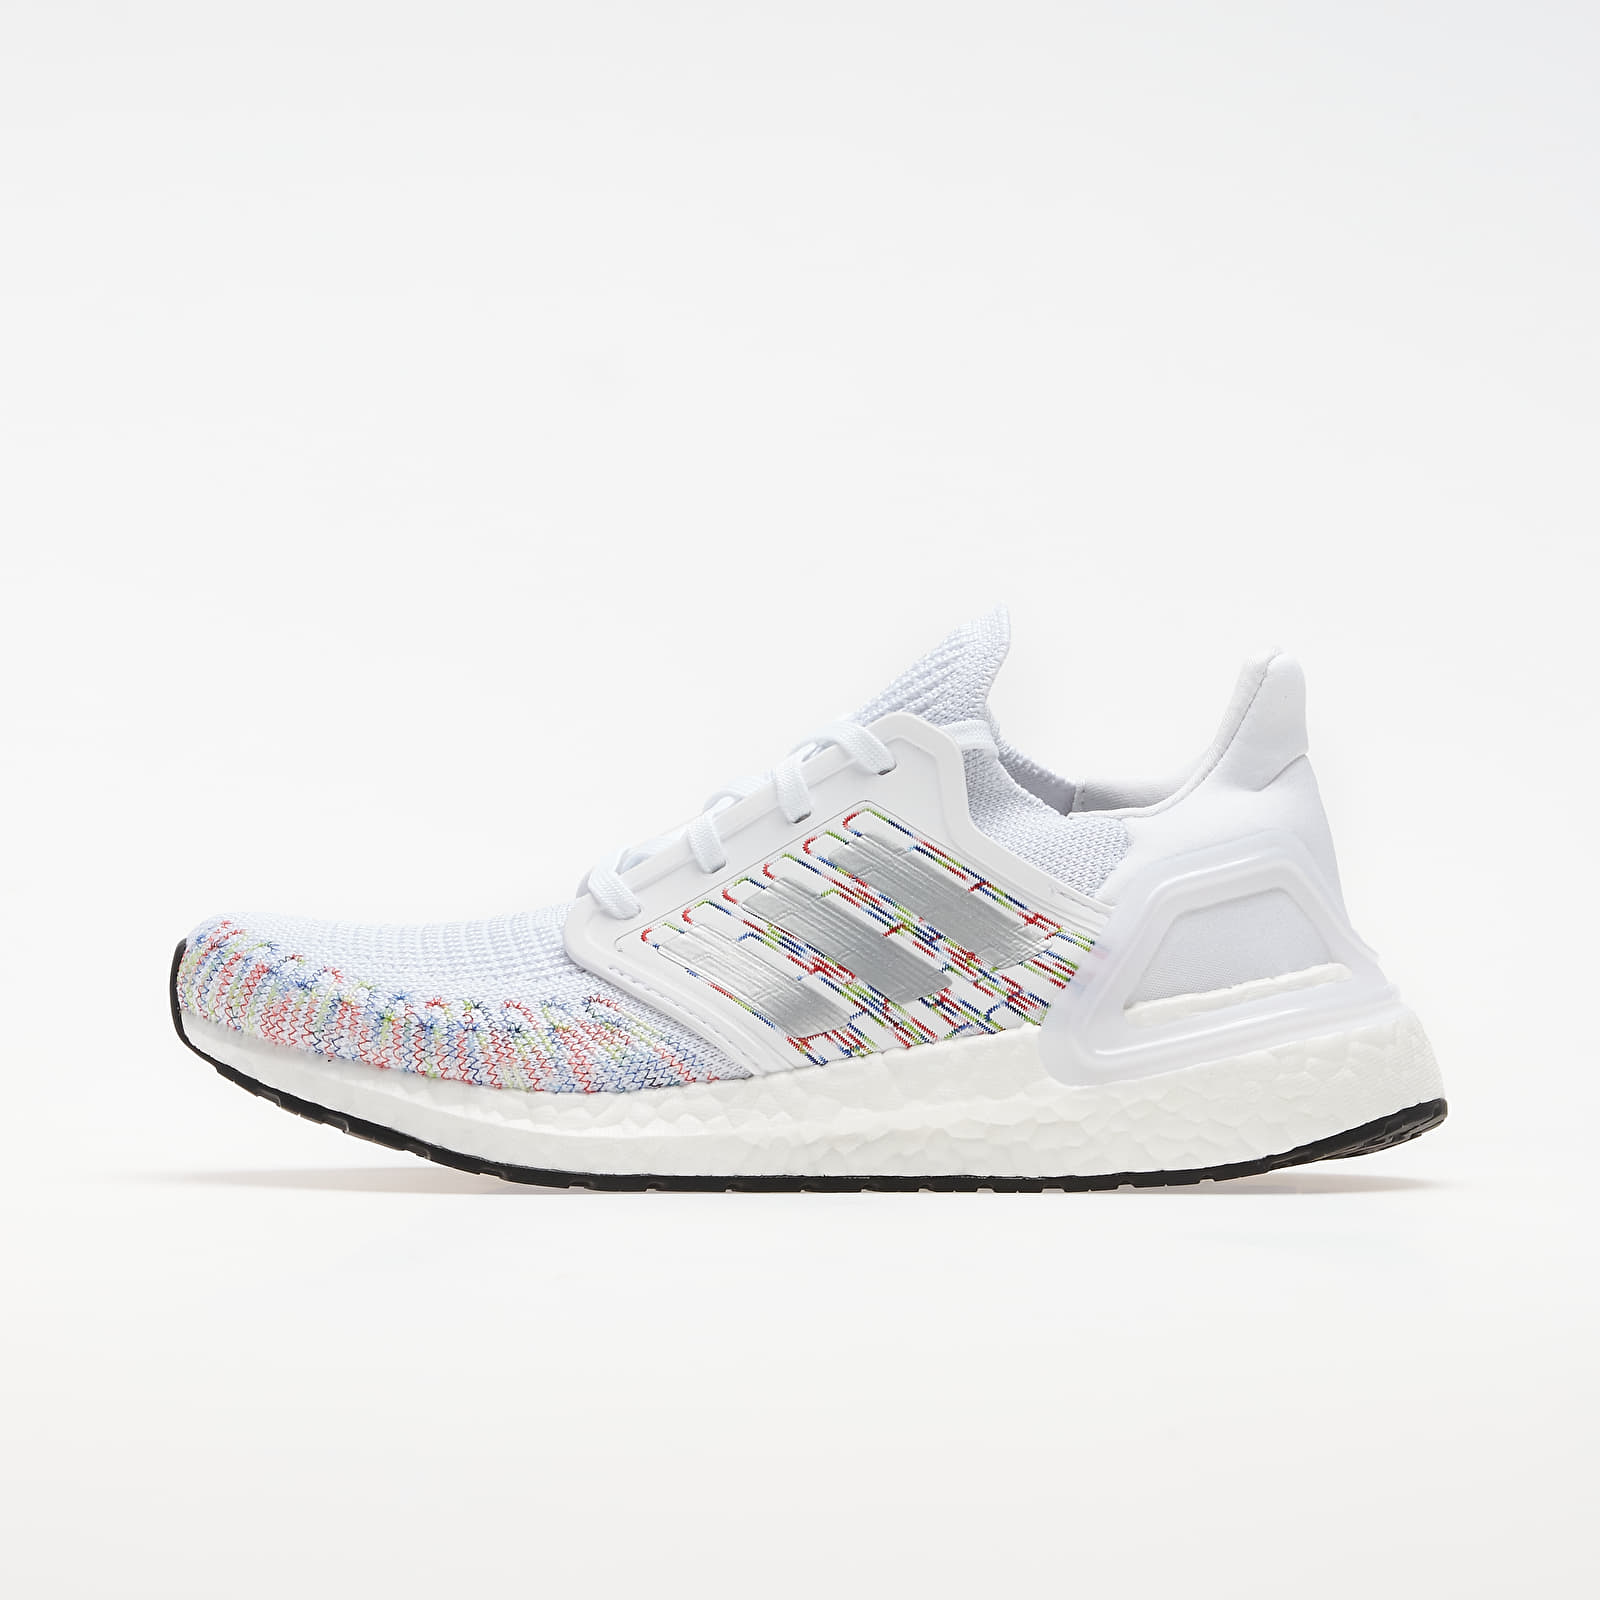 Women's shoes adidas UltraBOOST 20 W Ftw White/ Core Black/ Siggnr